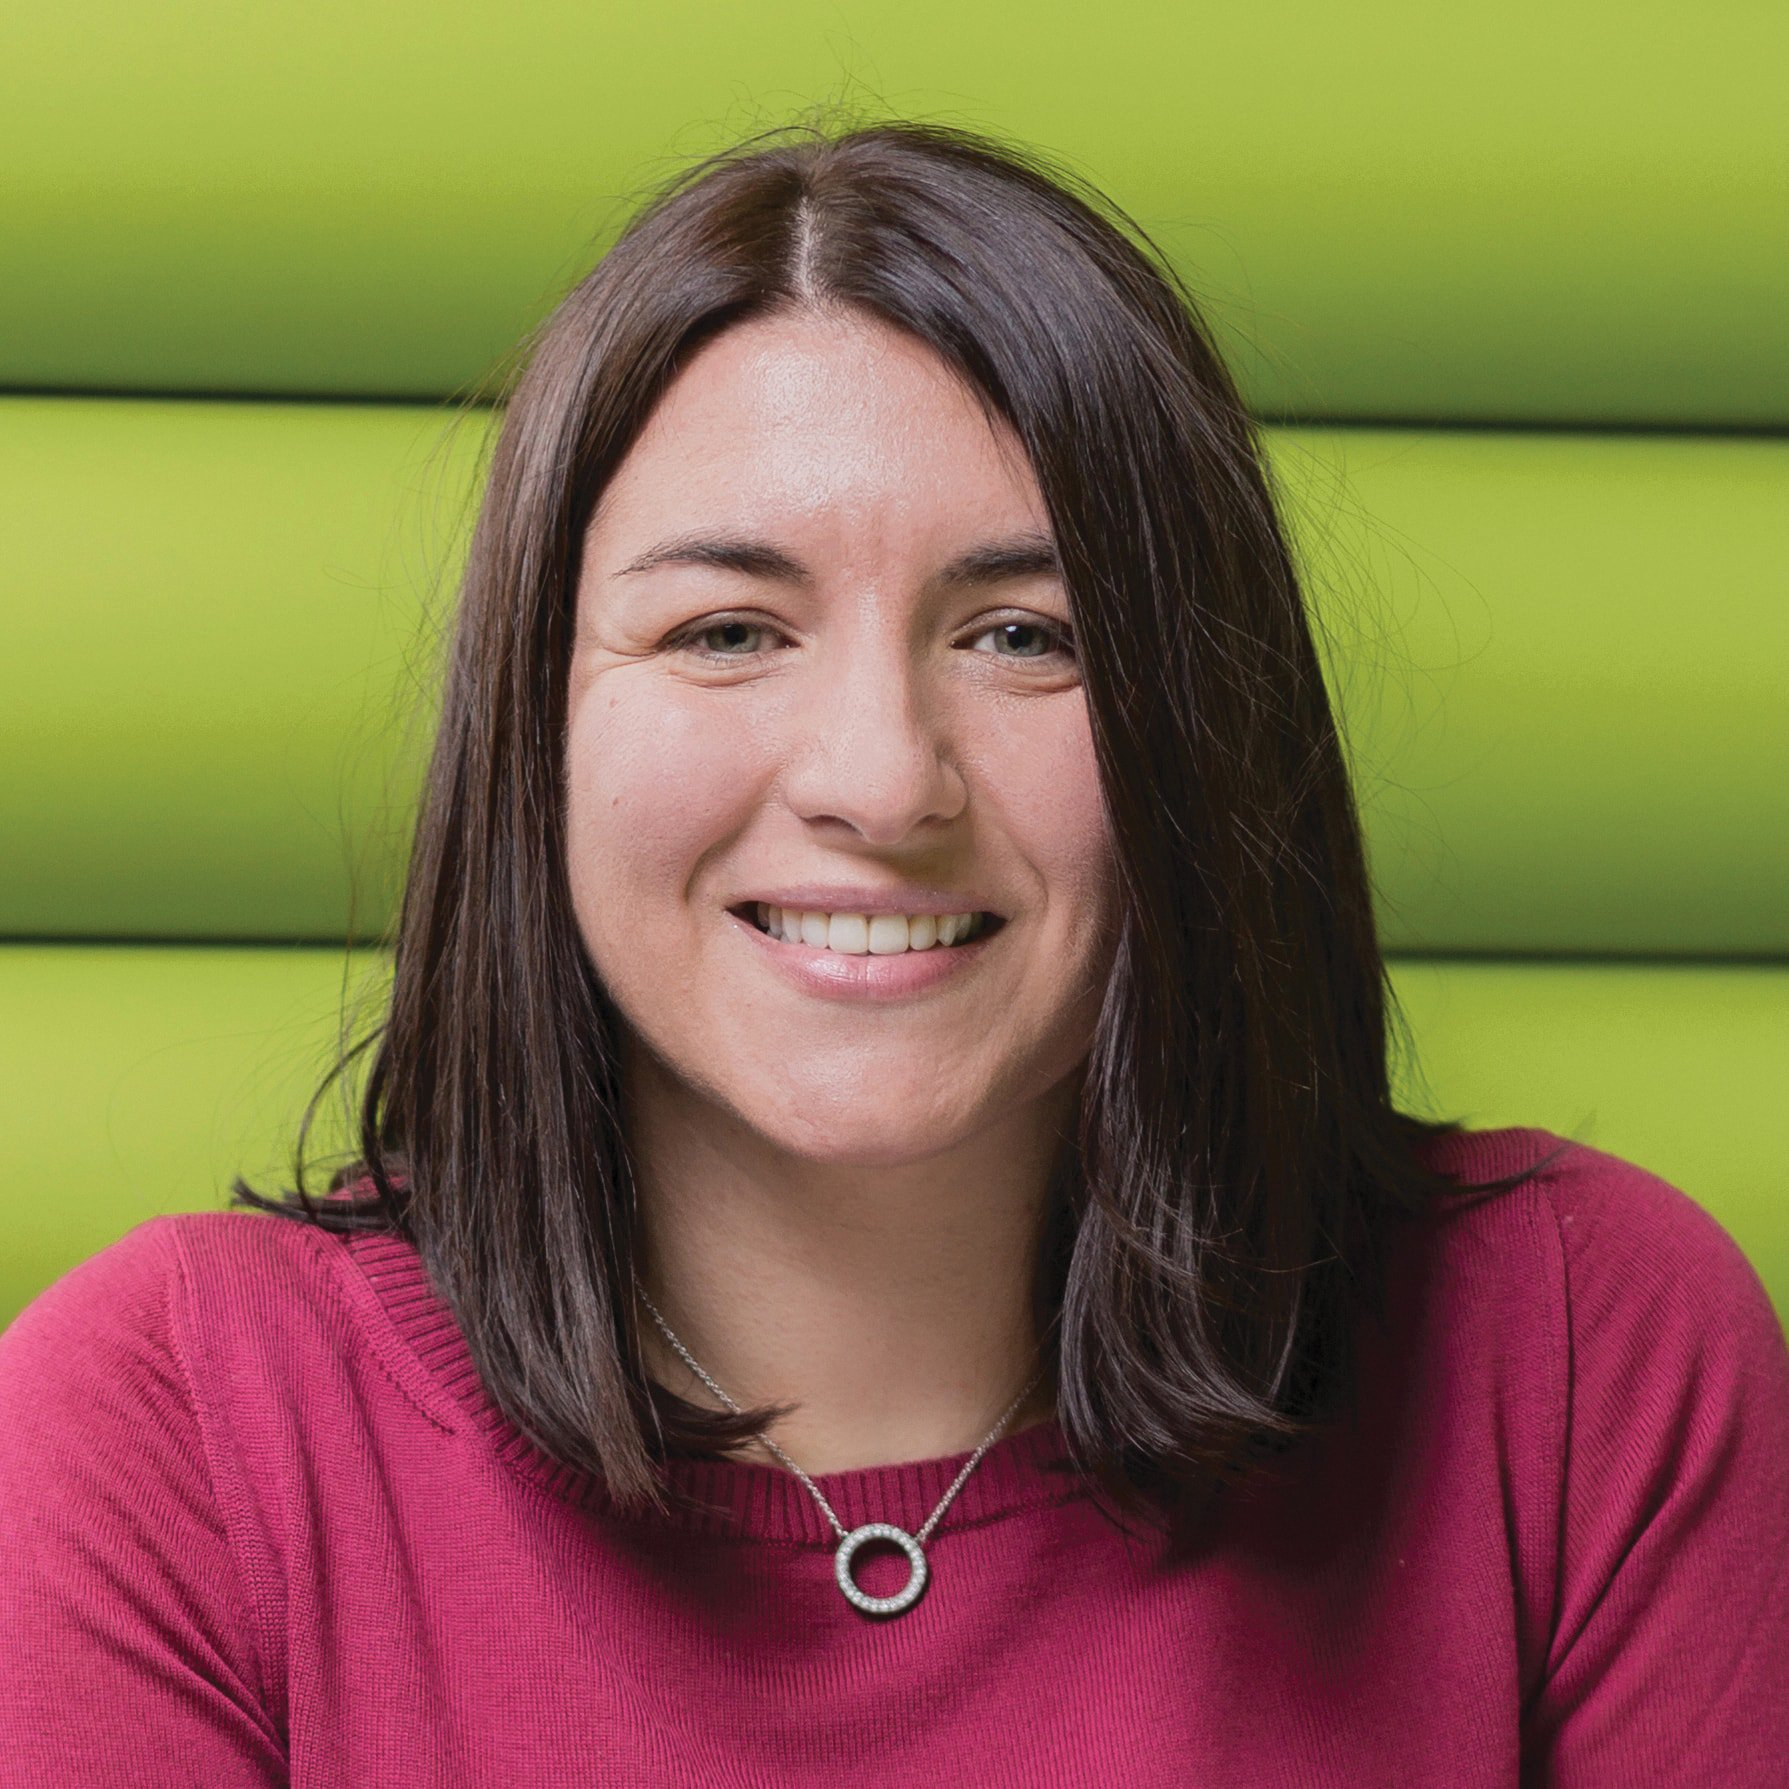 Maria Gutierrez - Women Who Code Edinburgh